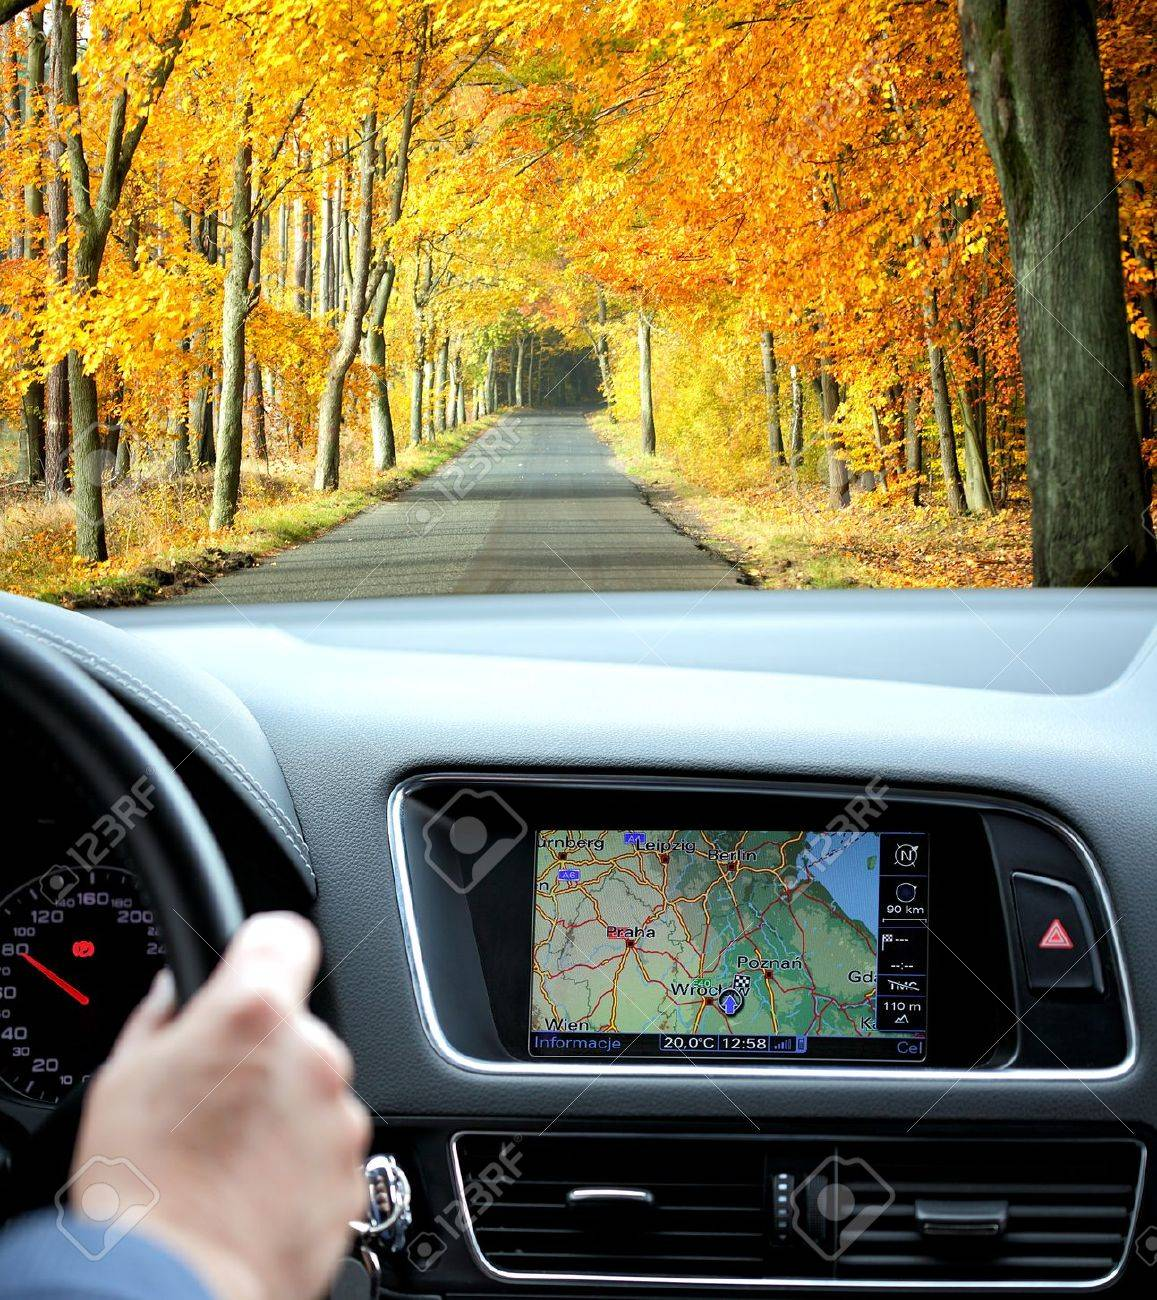 Travel by car with gps in autumnal scenery Stock Photo - 11187910